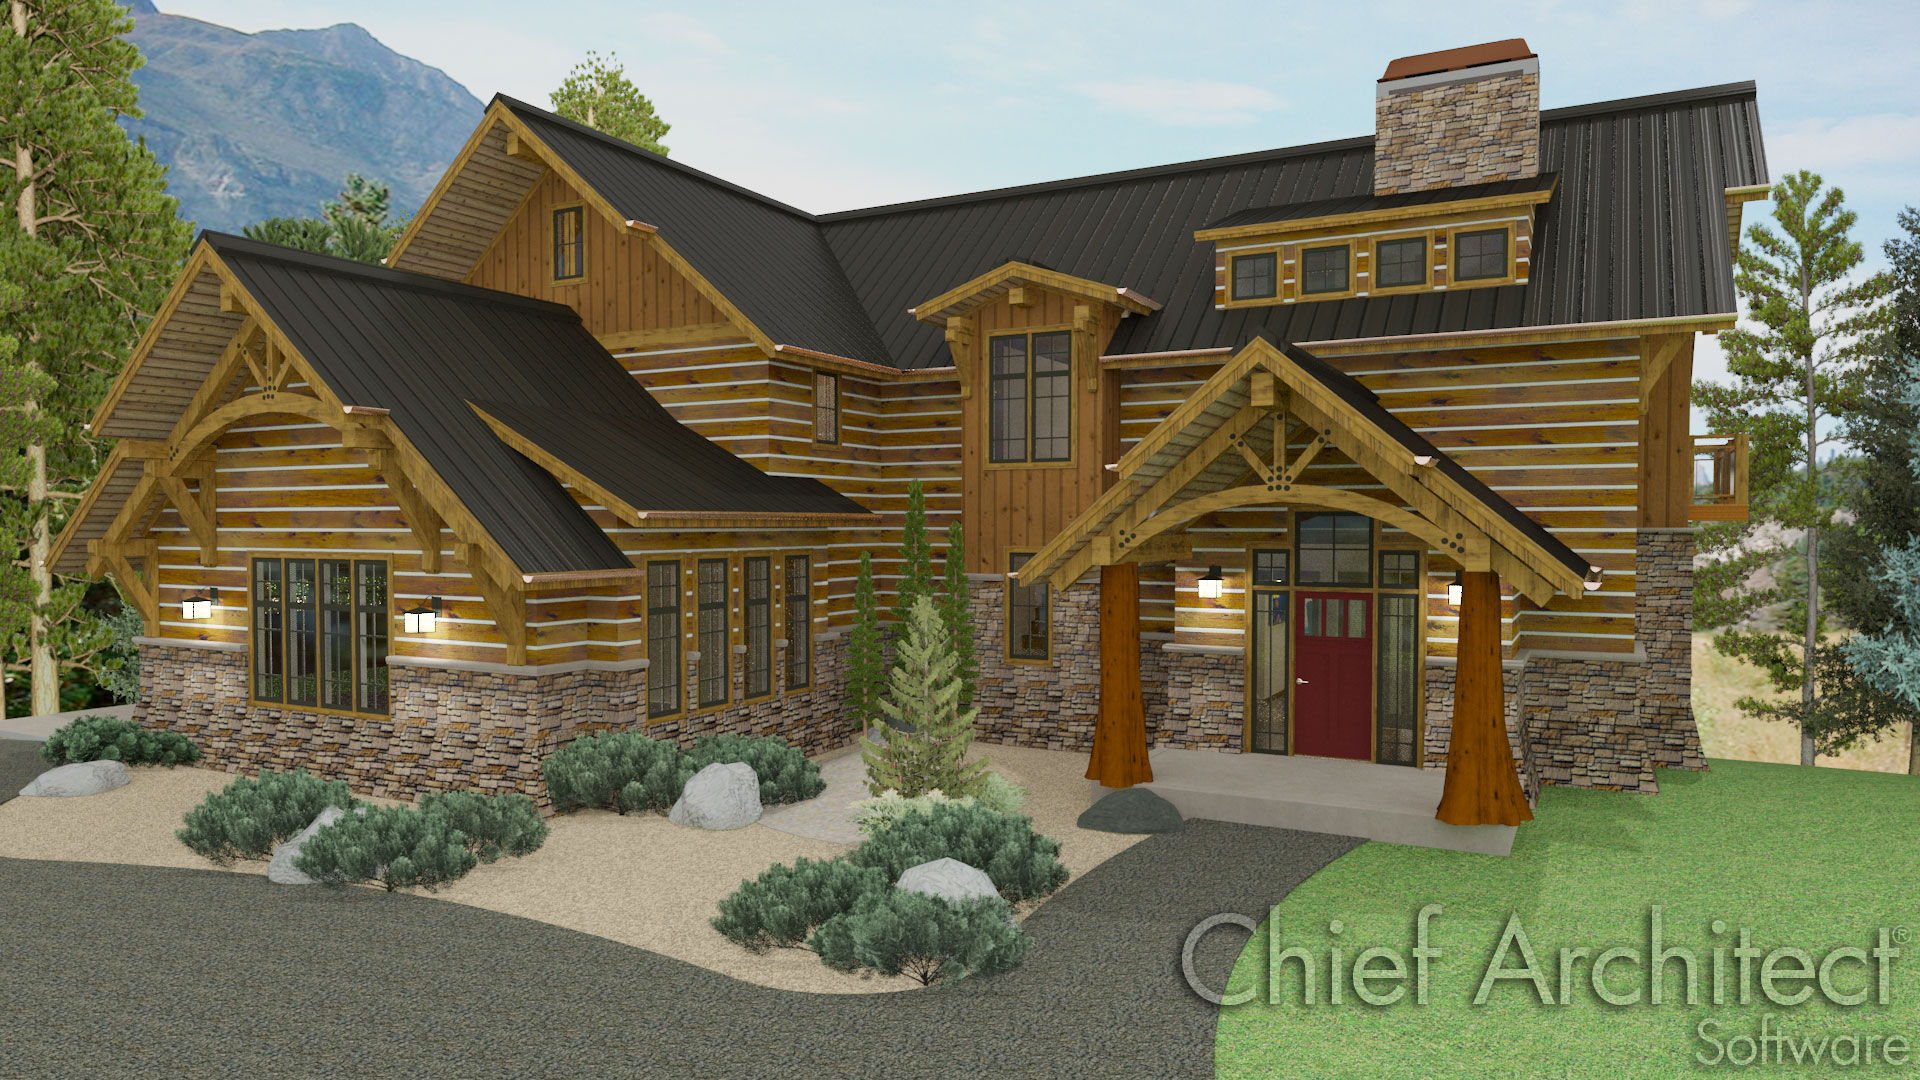 on timber frame construction in the form of a classic mountain home with shed dormer prow roof overhangs custom trusses log siding with chinking - Home Design Construction